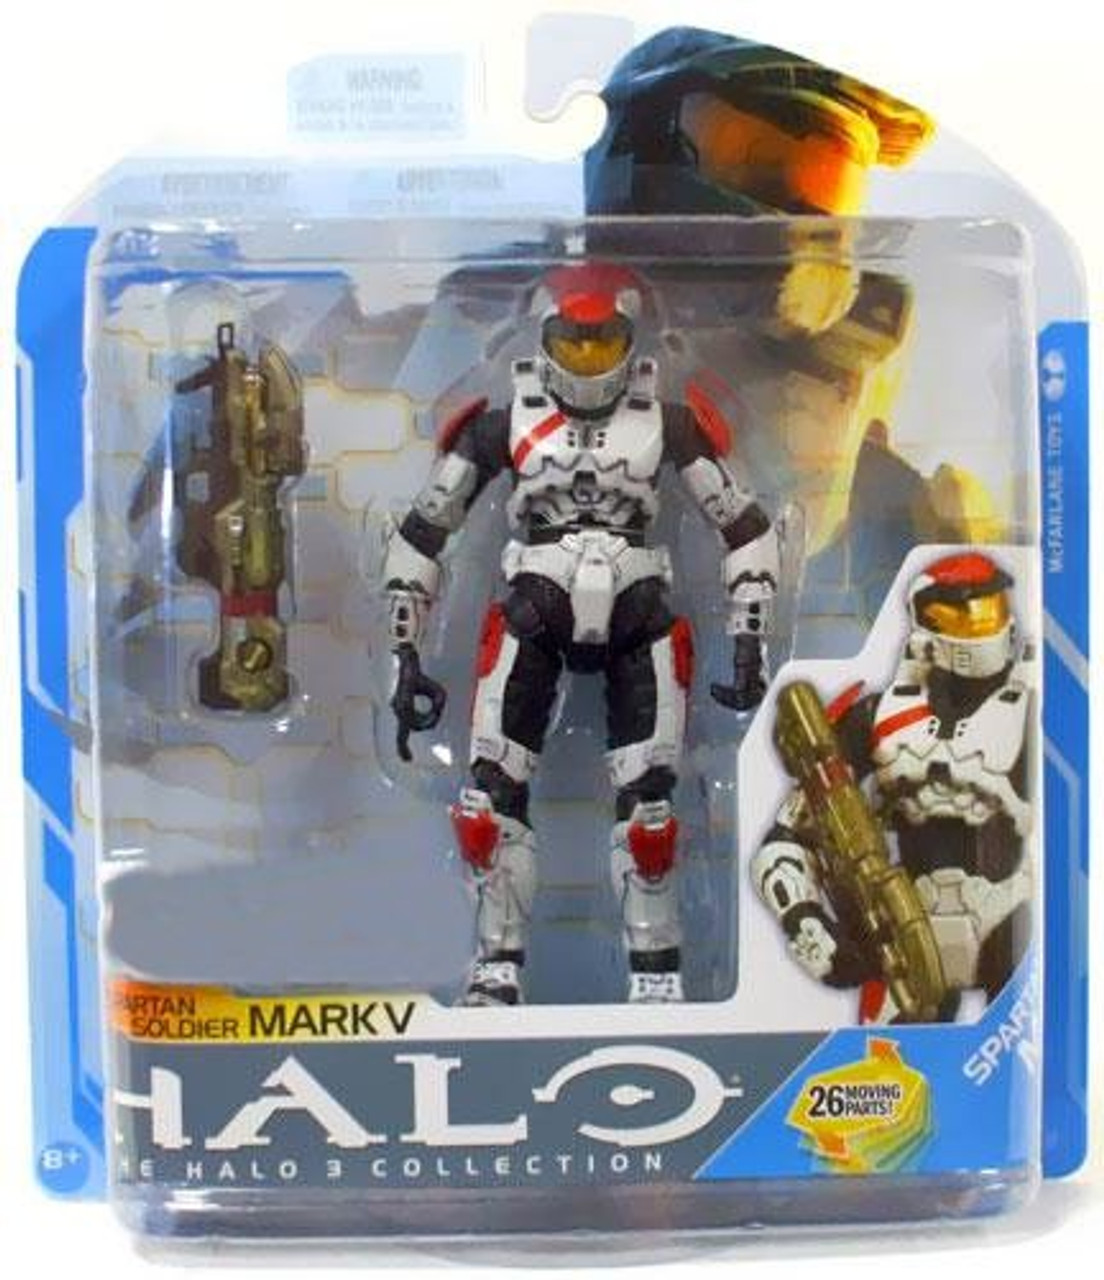 McFarlane Toys Halo 3 Series 7 Spartan Soldier Mark V Exclusive Action Figure [White]